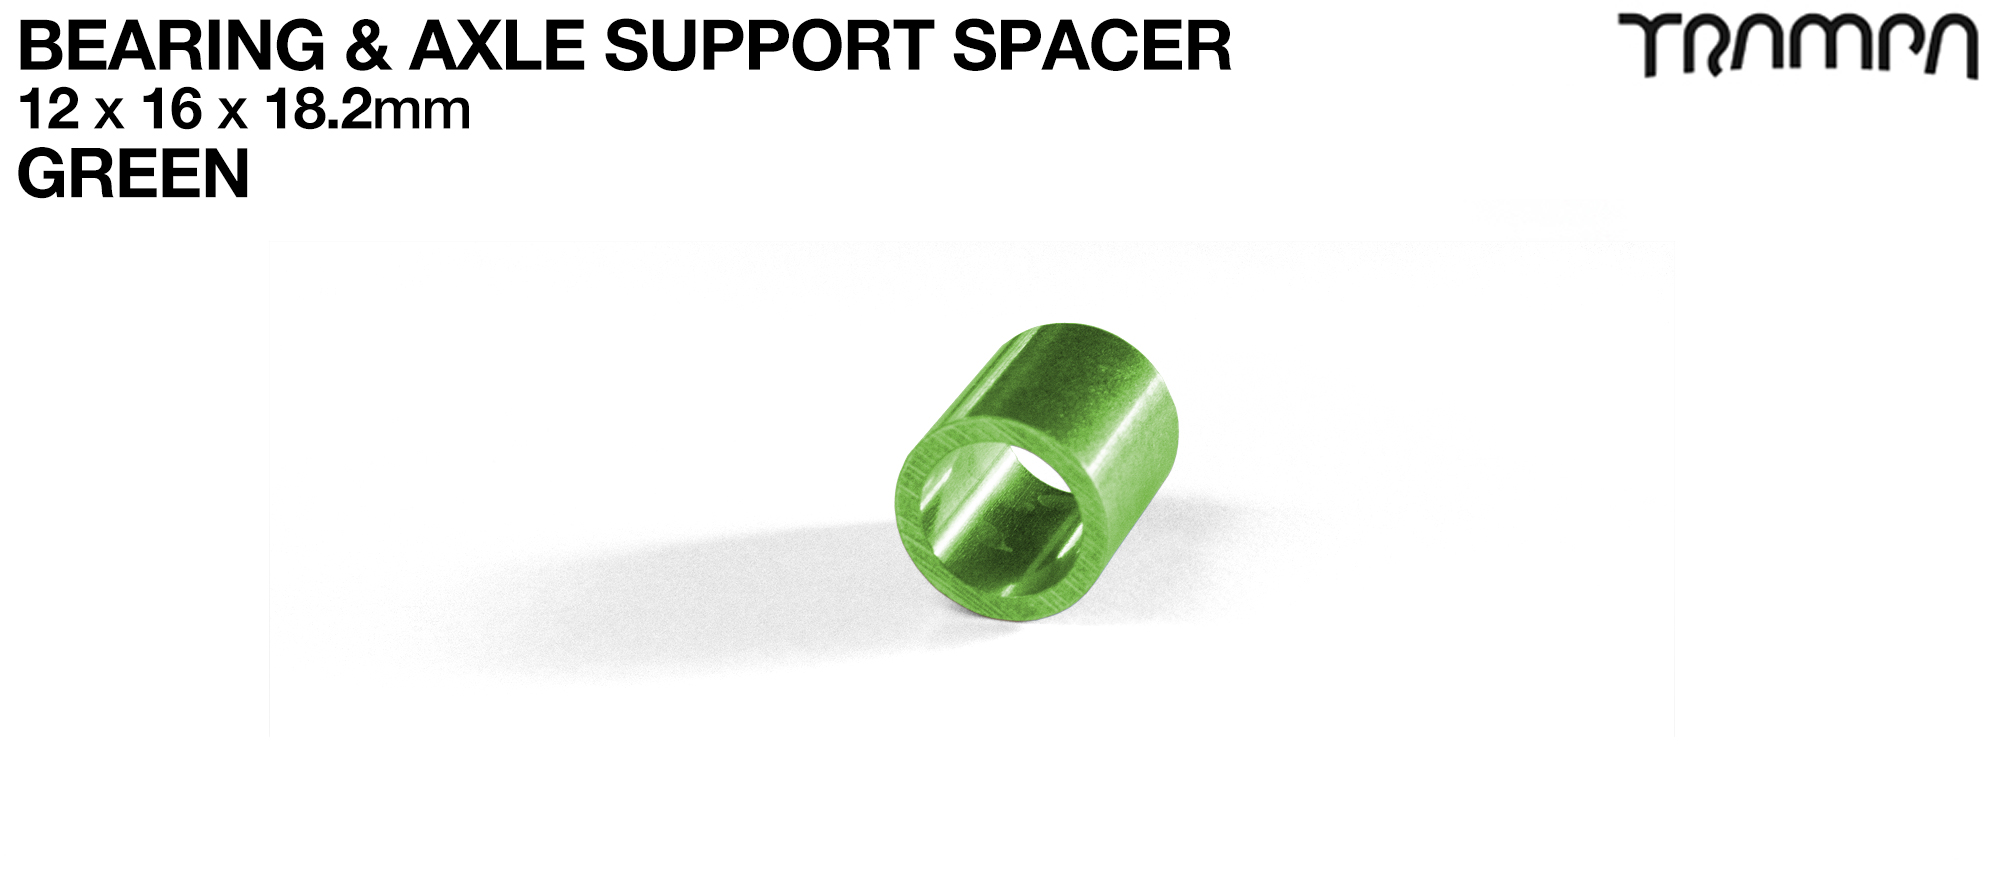 GREEN 18.2mm Wheel Support Axle Spacers